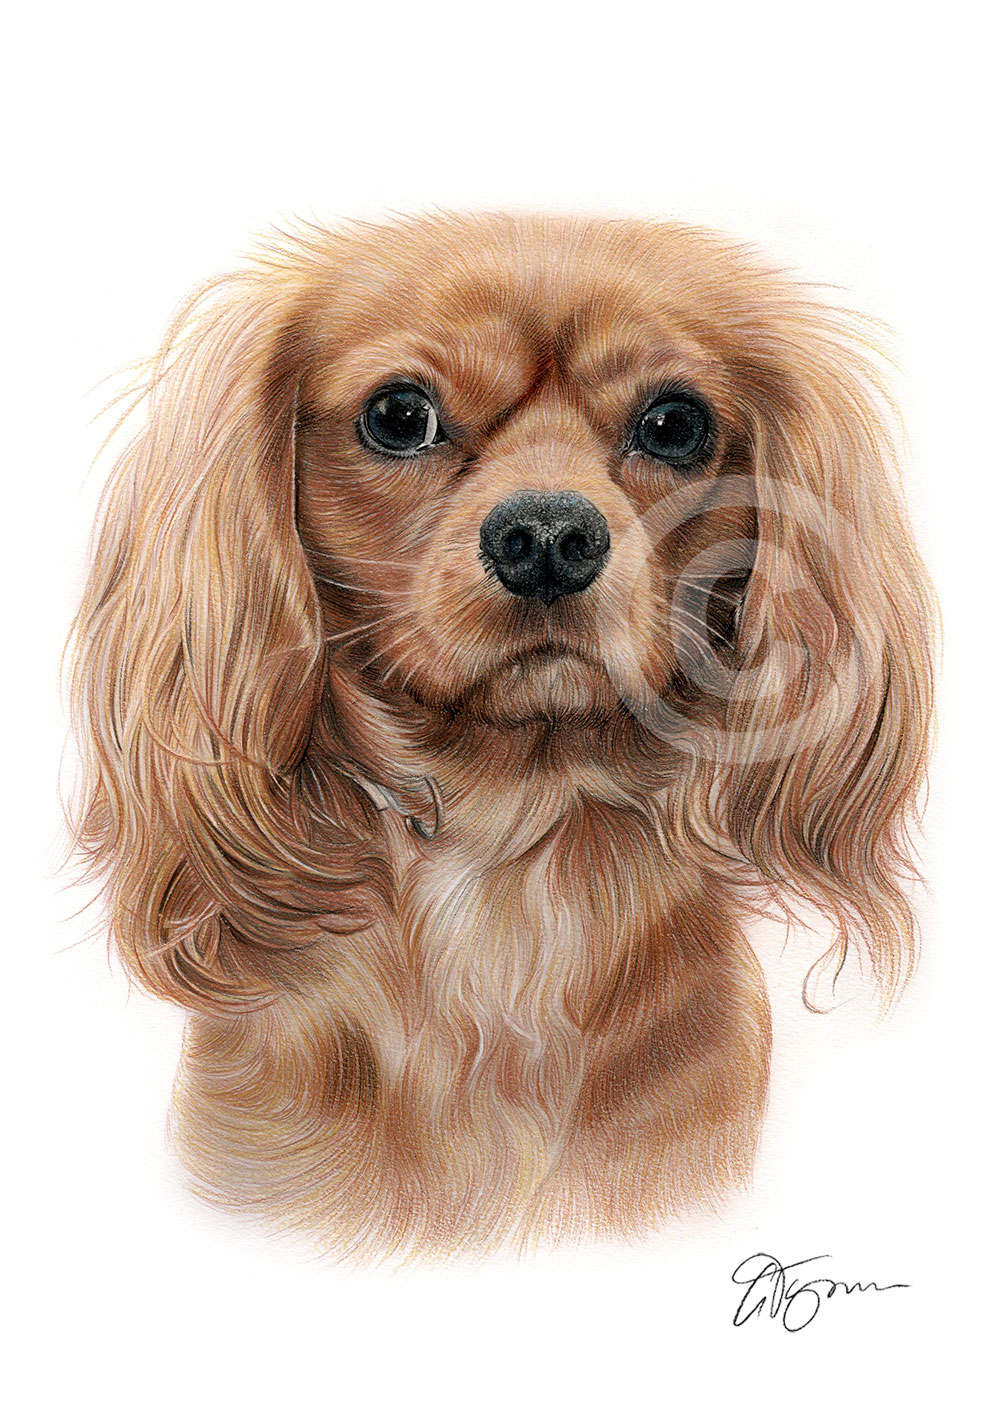 Colour pencil drawing of a King Charles Spaniel by artist Gary Tymon